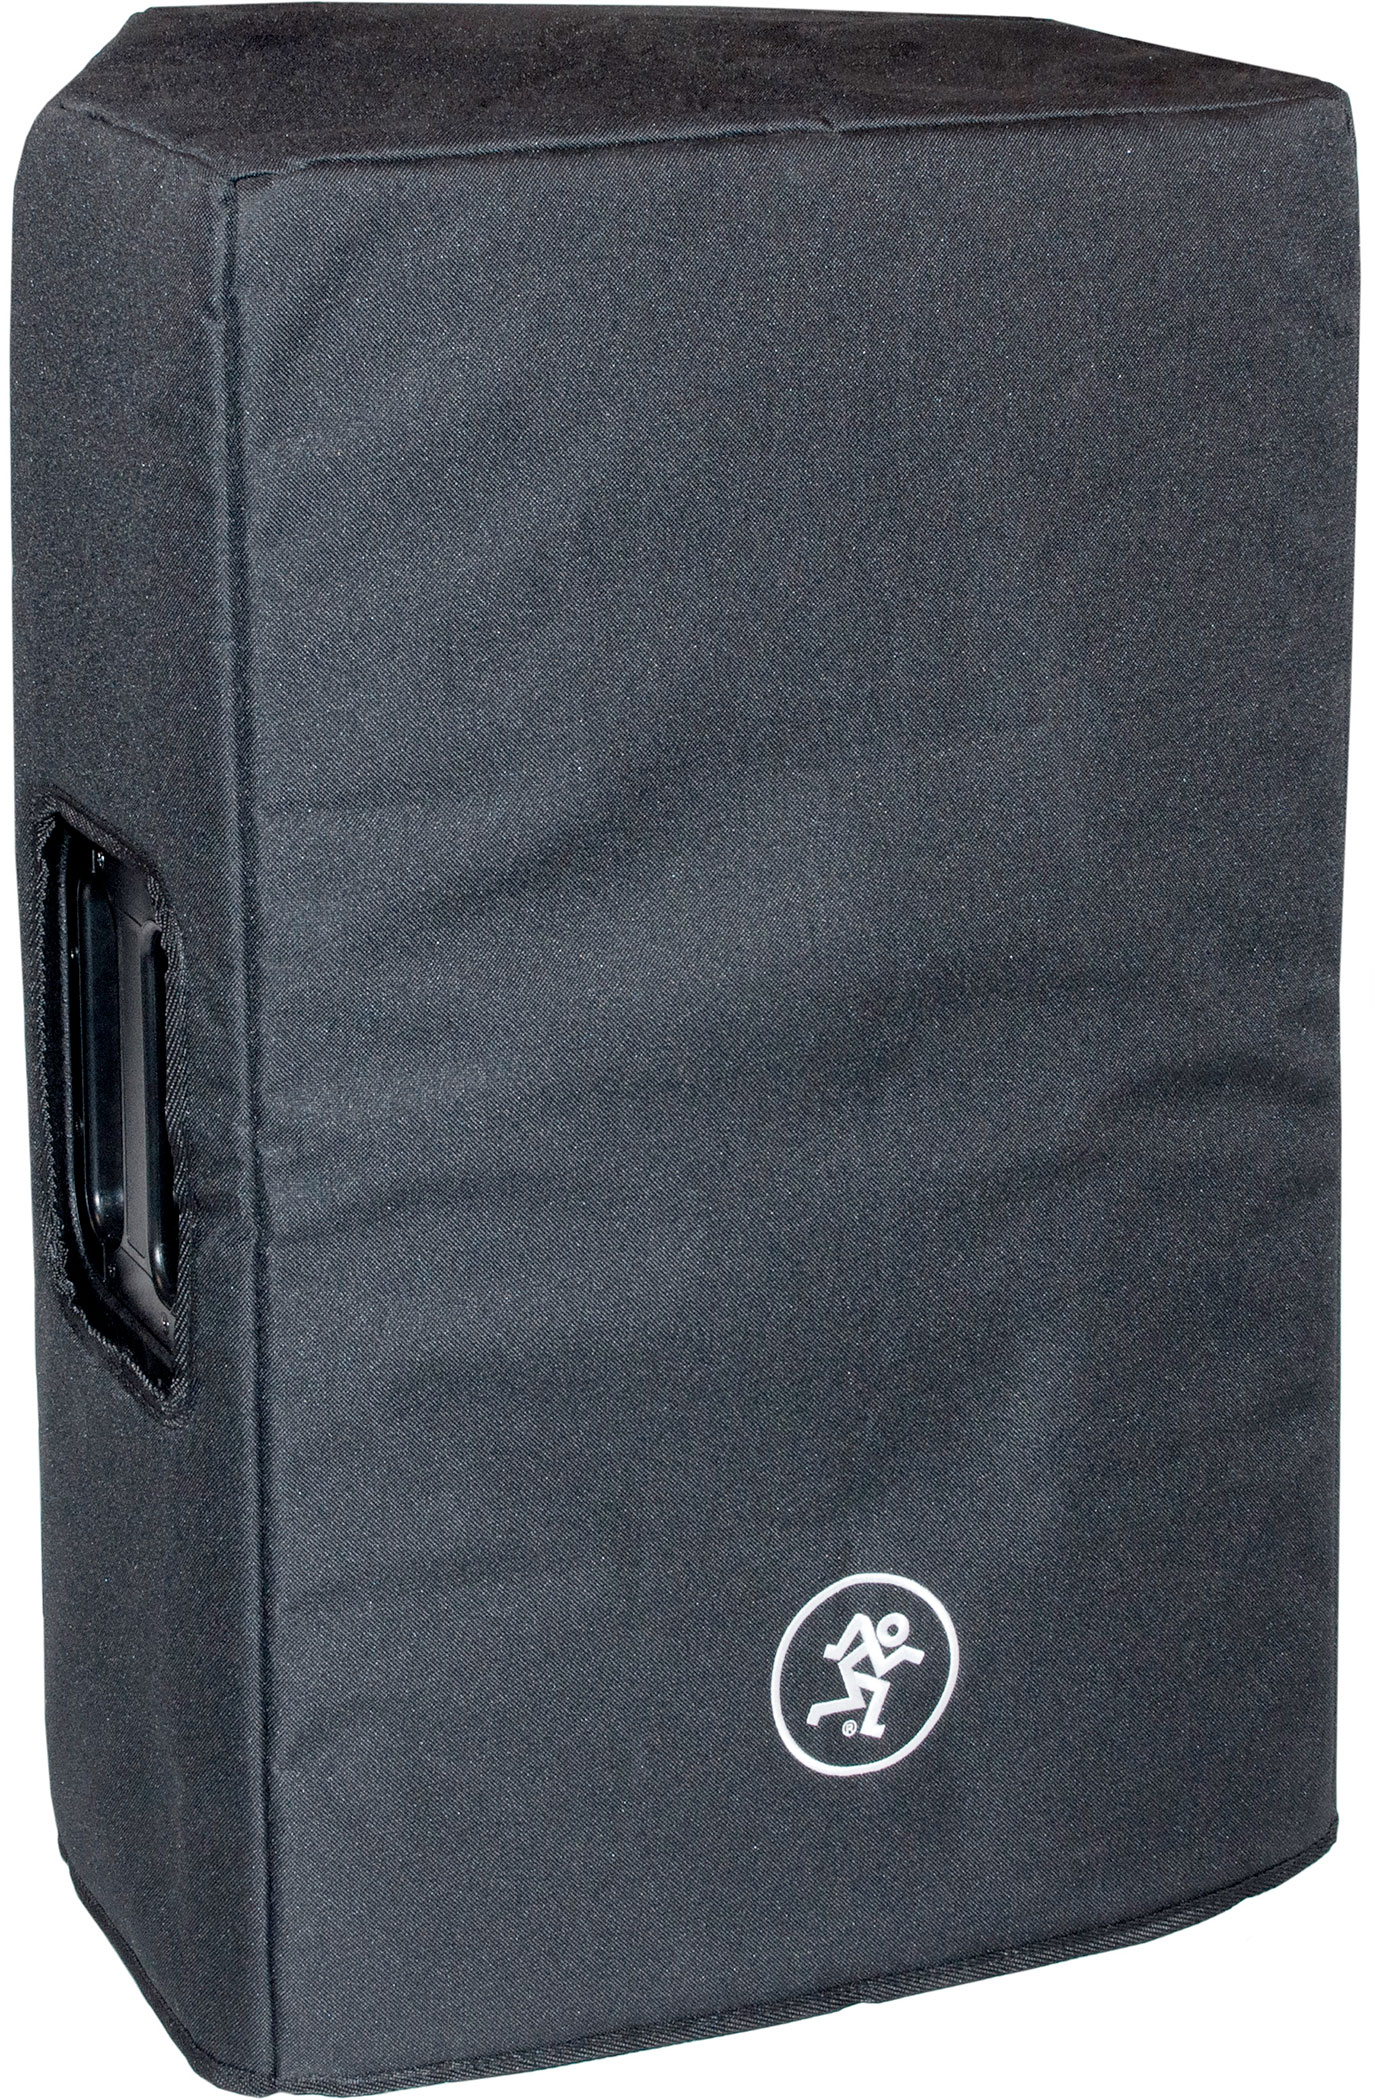 MACKIE SRM650 COVER